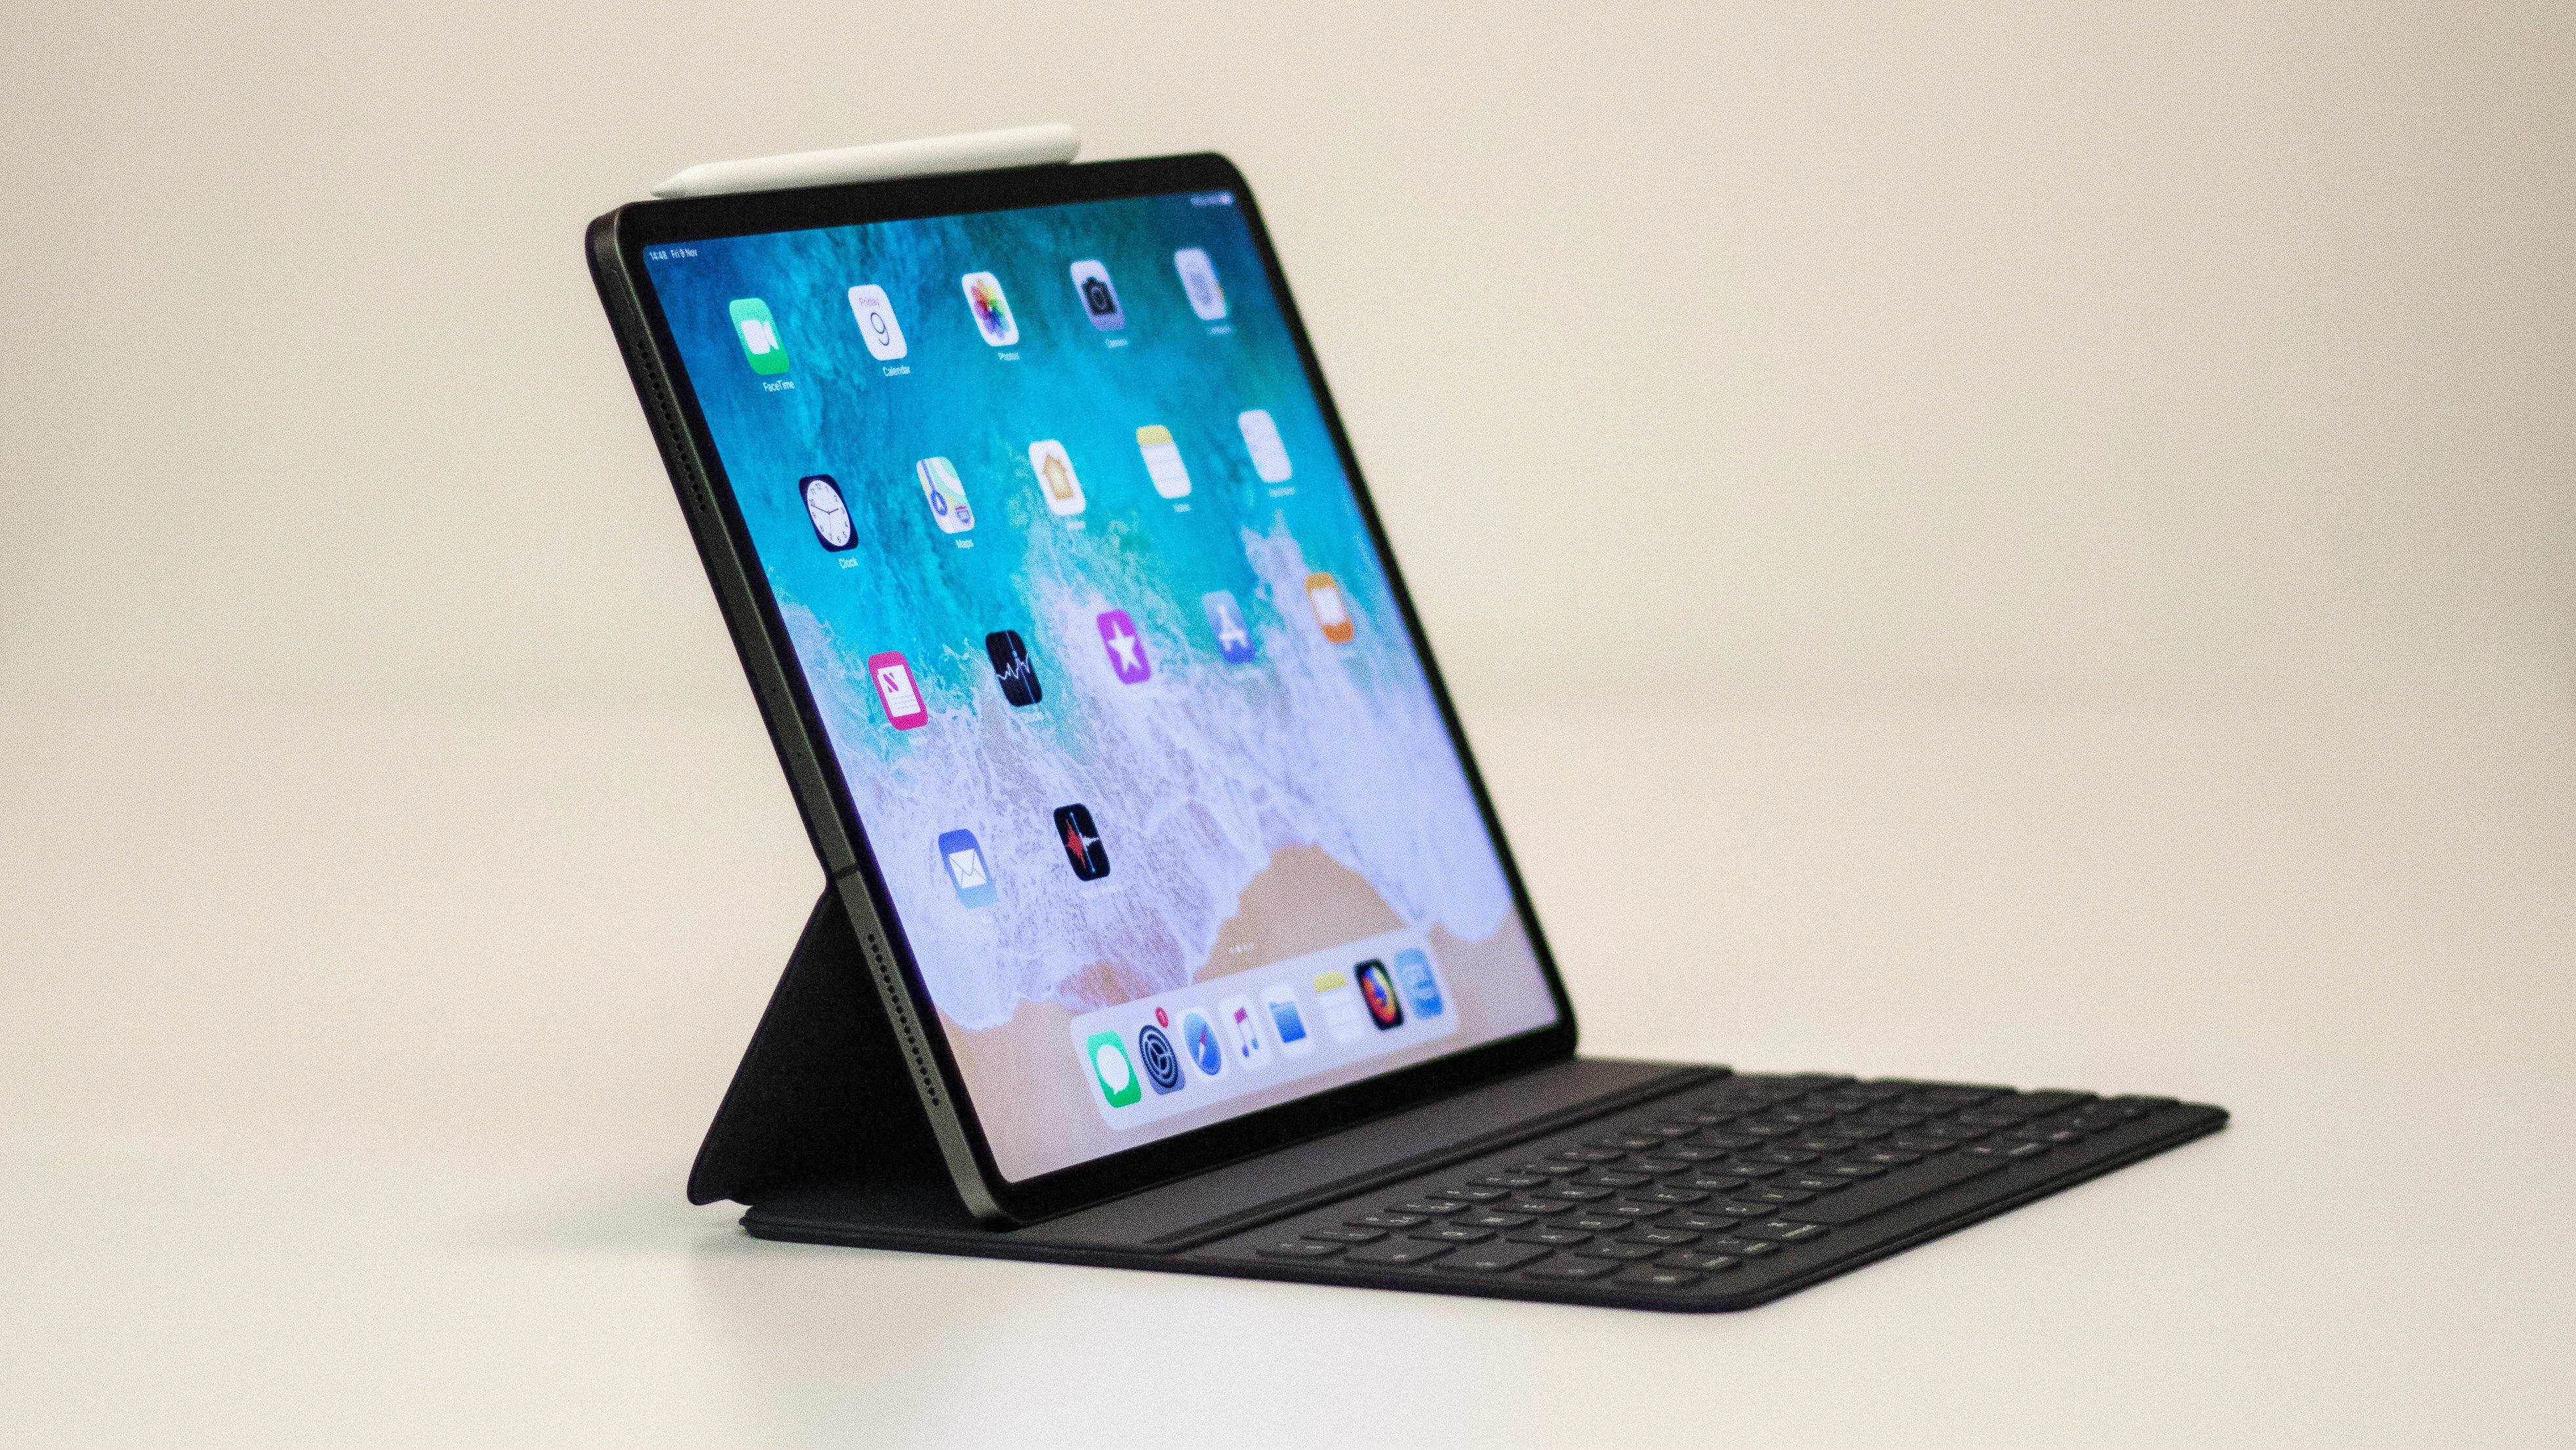 0a0bfe6375fc Since iPad Pro deals are so few and far between, we've got to shout about  this good-looking saving from Currys PC World. The high street giants have  sliced ...